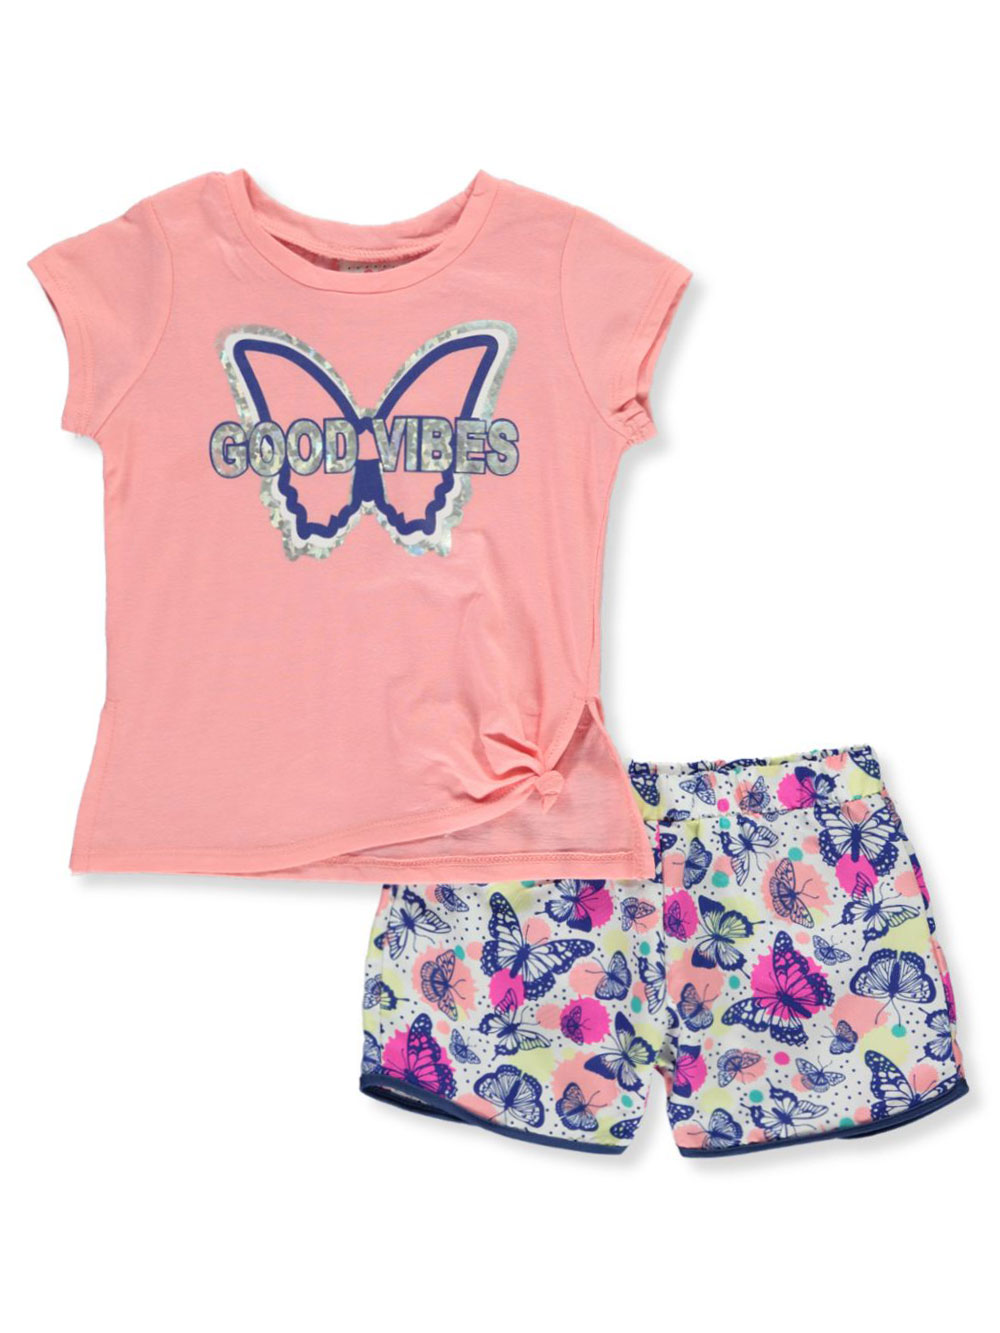 Vibes 2-Piece Shorts Set Outfit